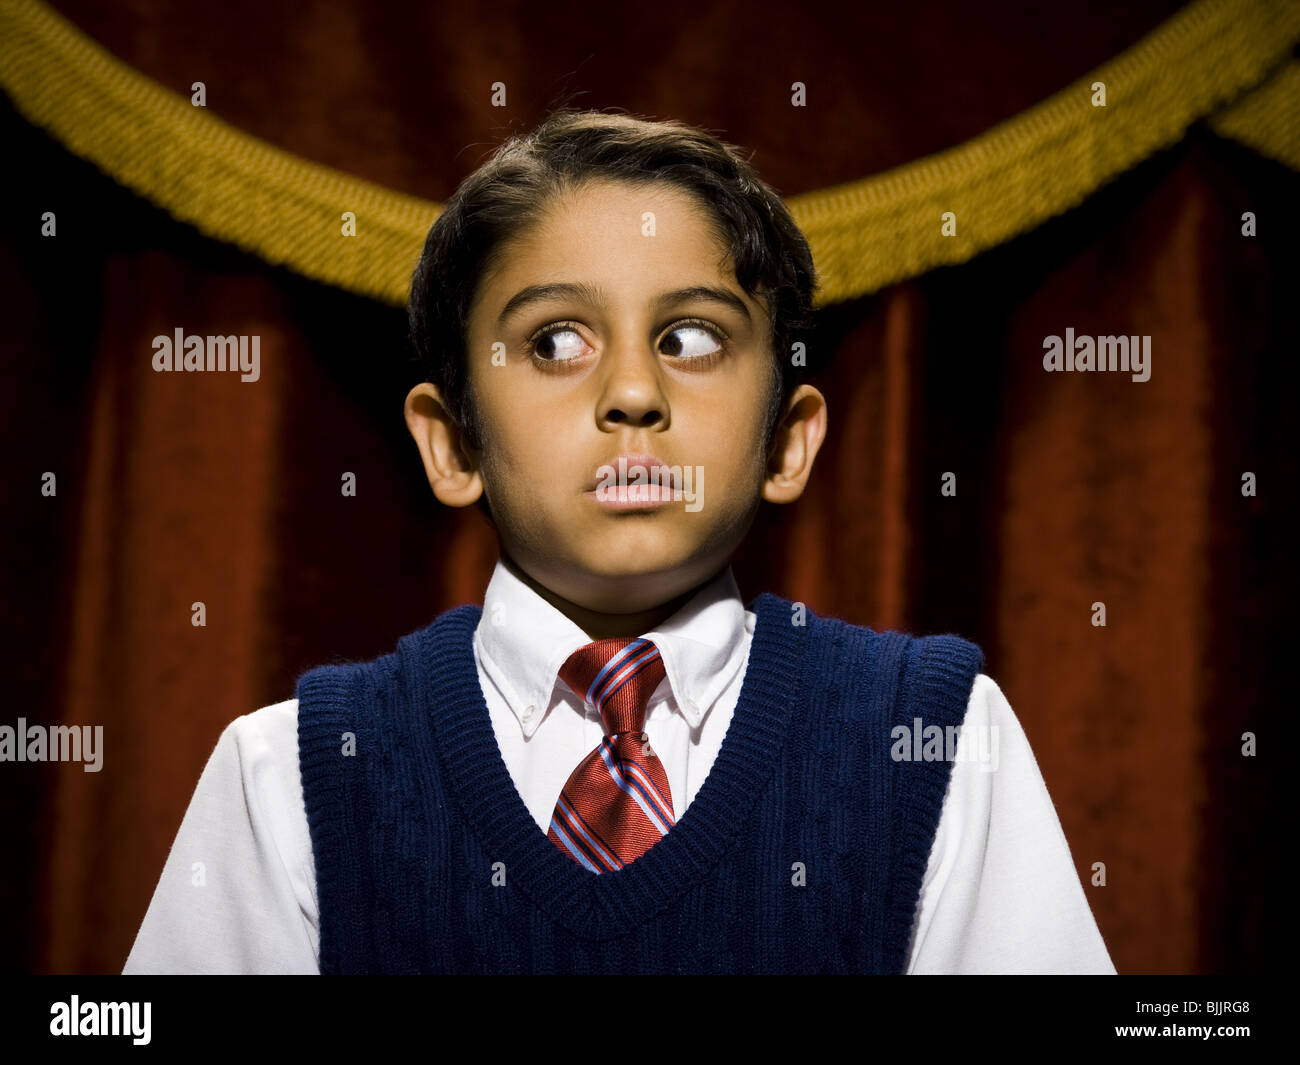 Boy standing on stage with microphone and big eyes - Stock Image